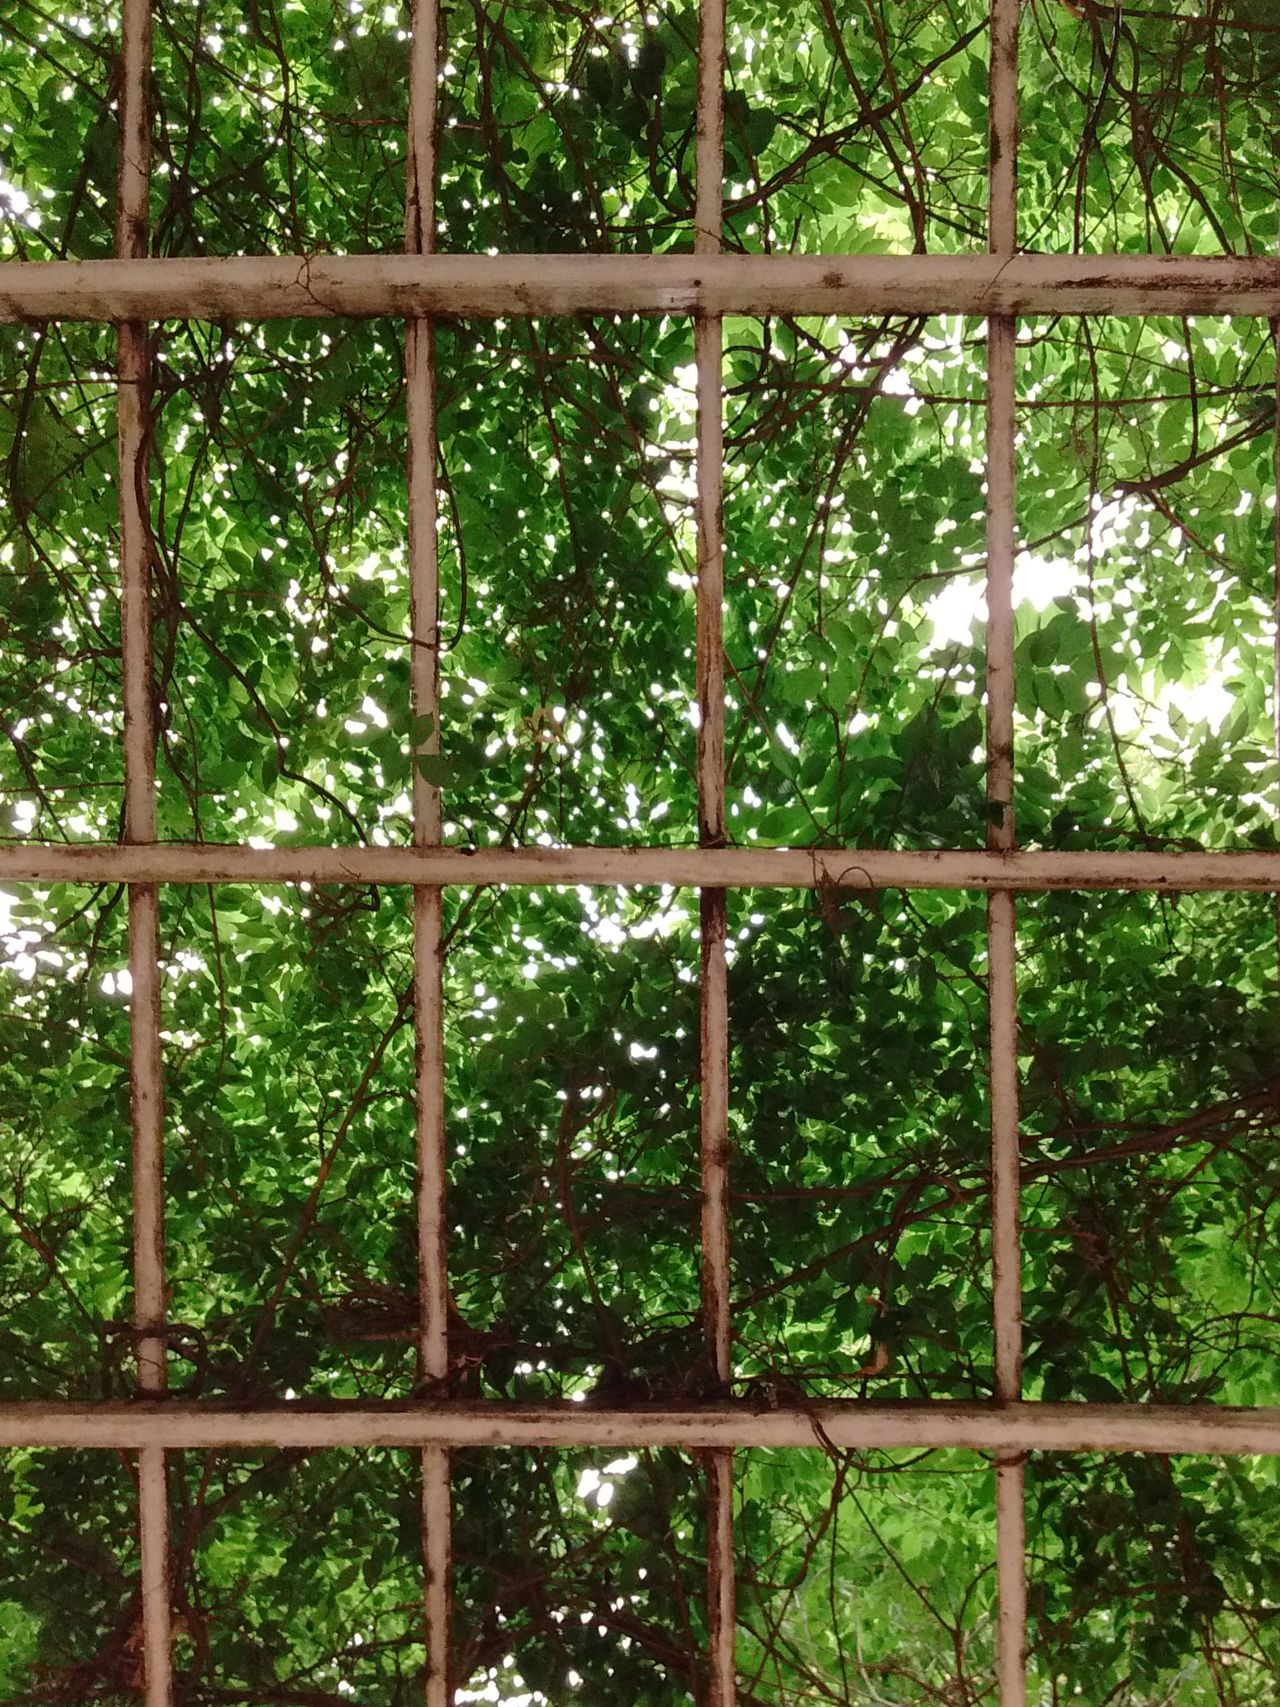 O telhado vive Backgrounds Day Full Frame Green Color Grid Nature No People Outdoors Pergola Sky Tree